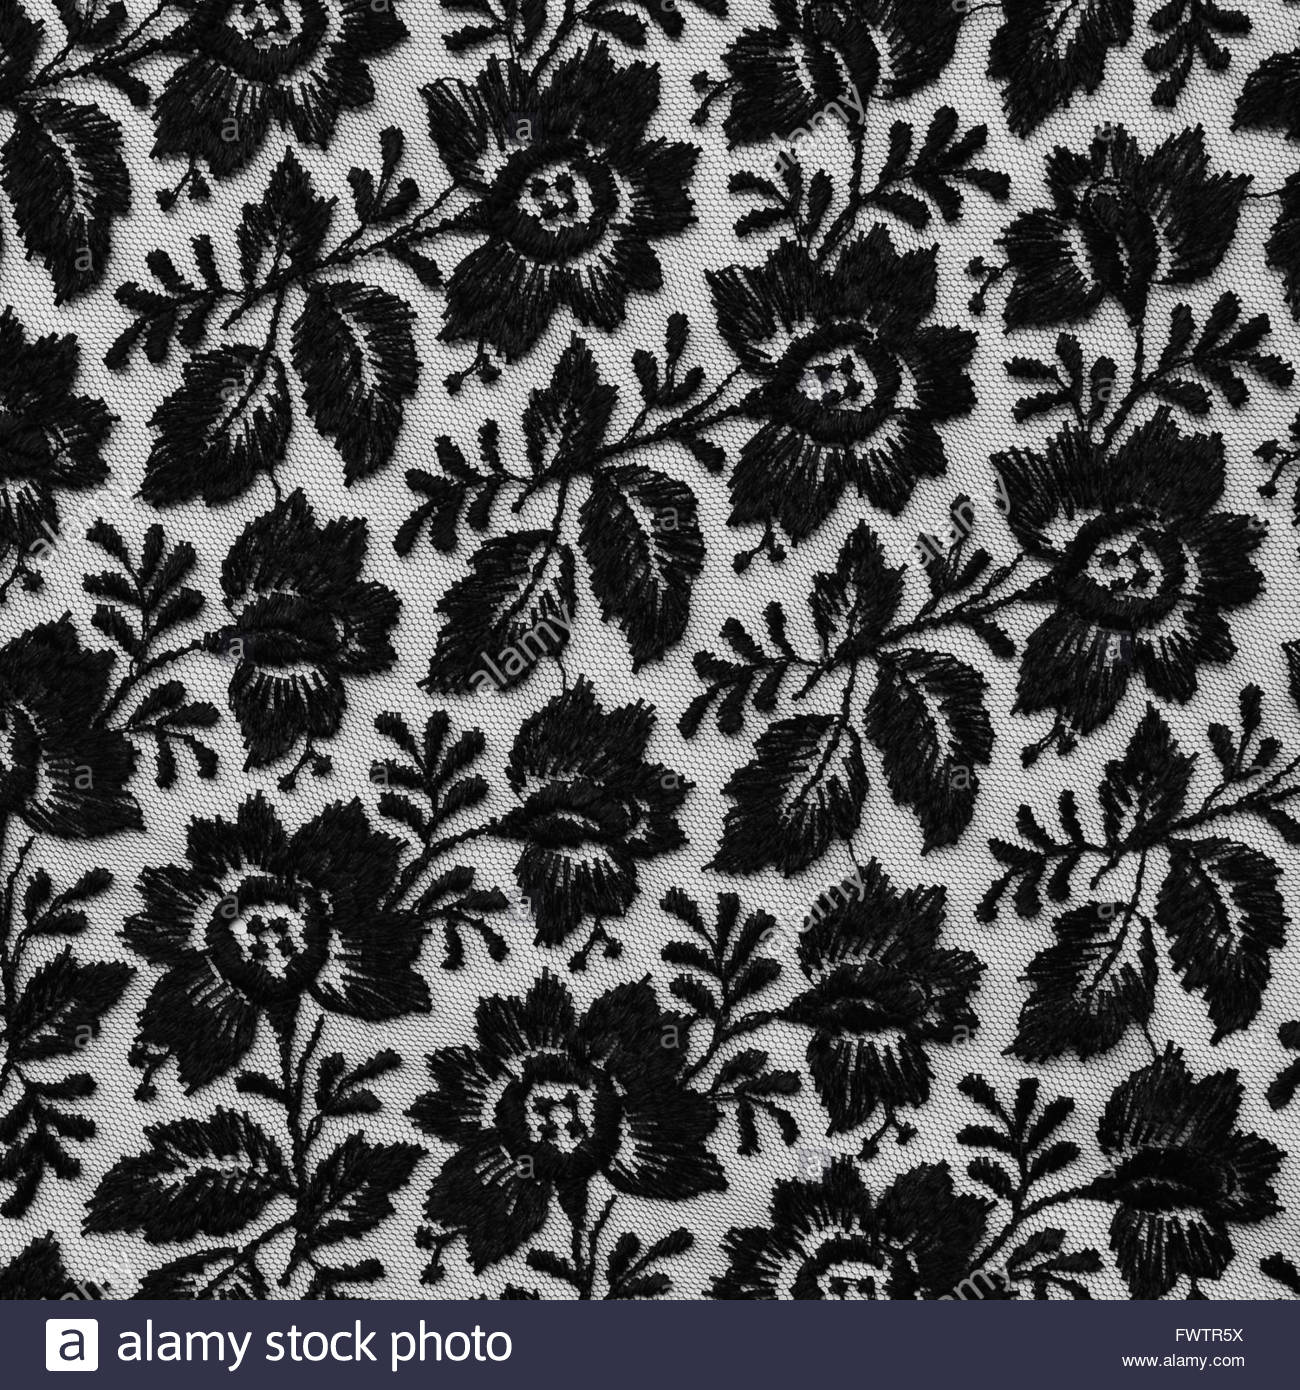 Black Lace Fabric Texture With Floral Design